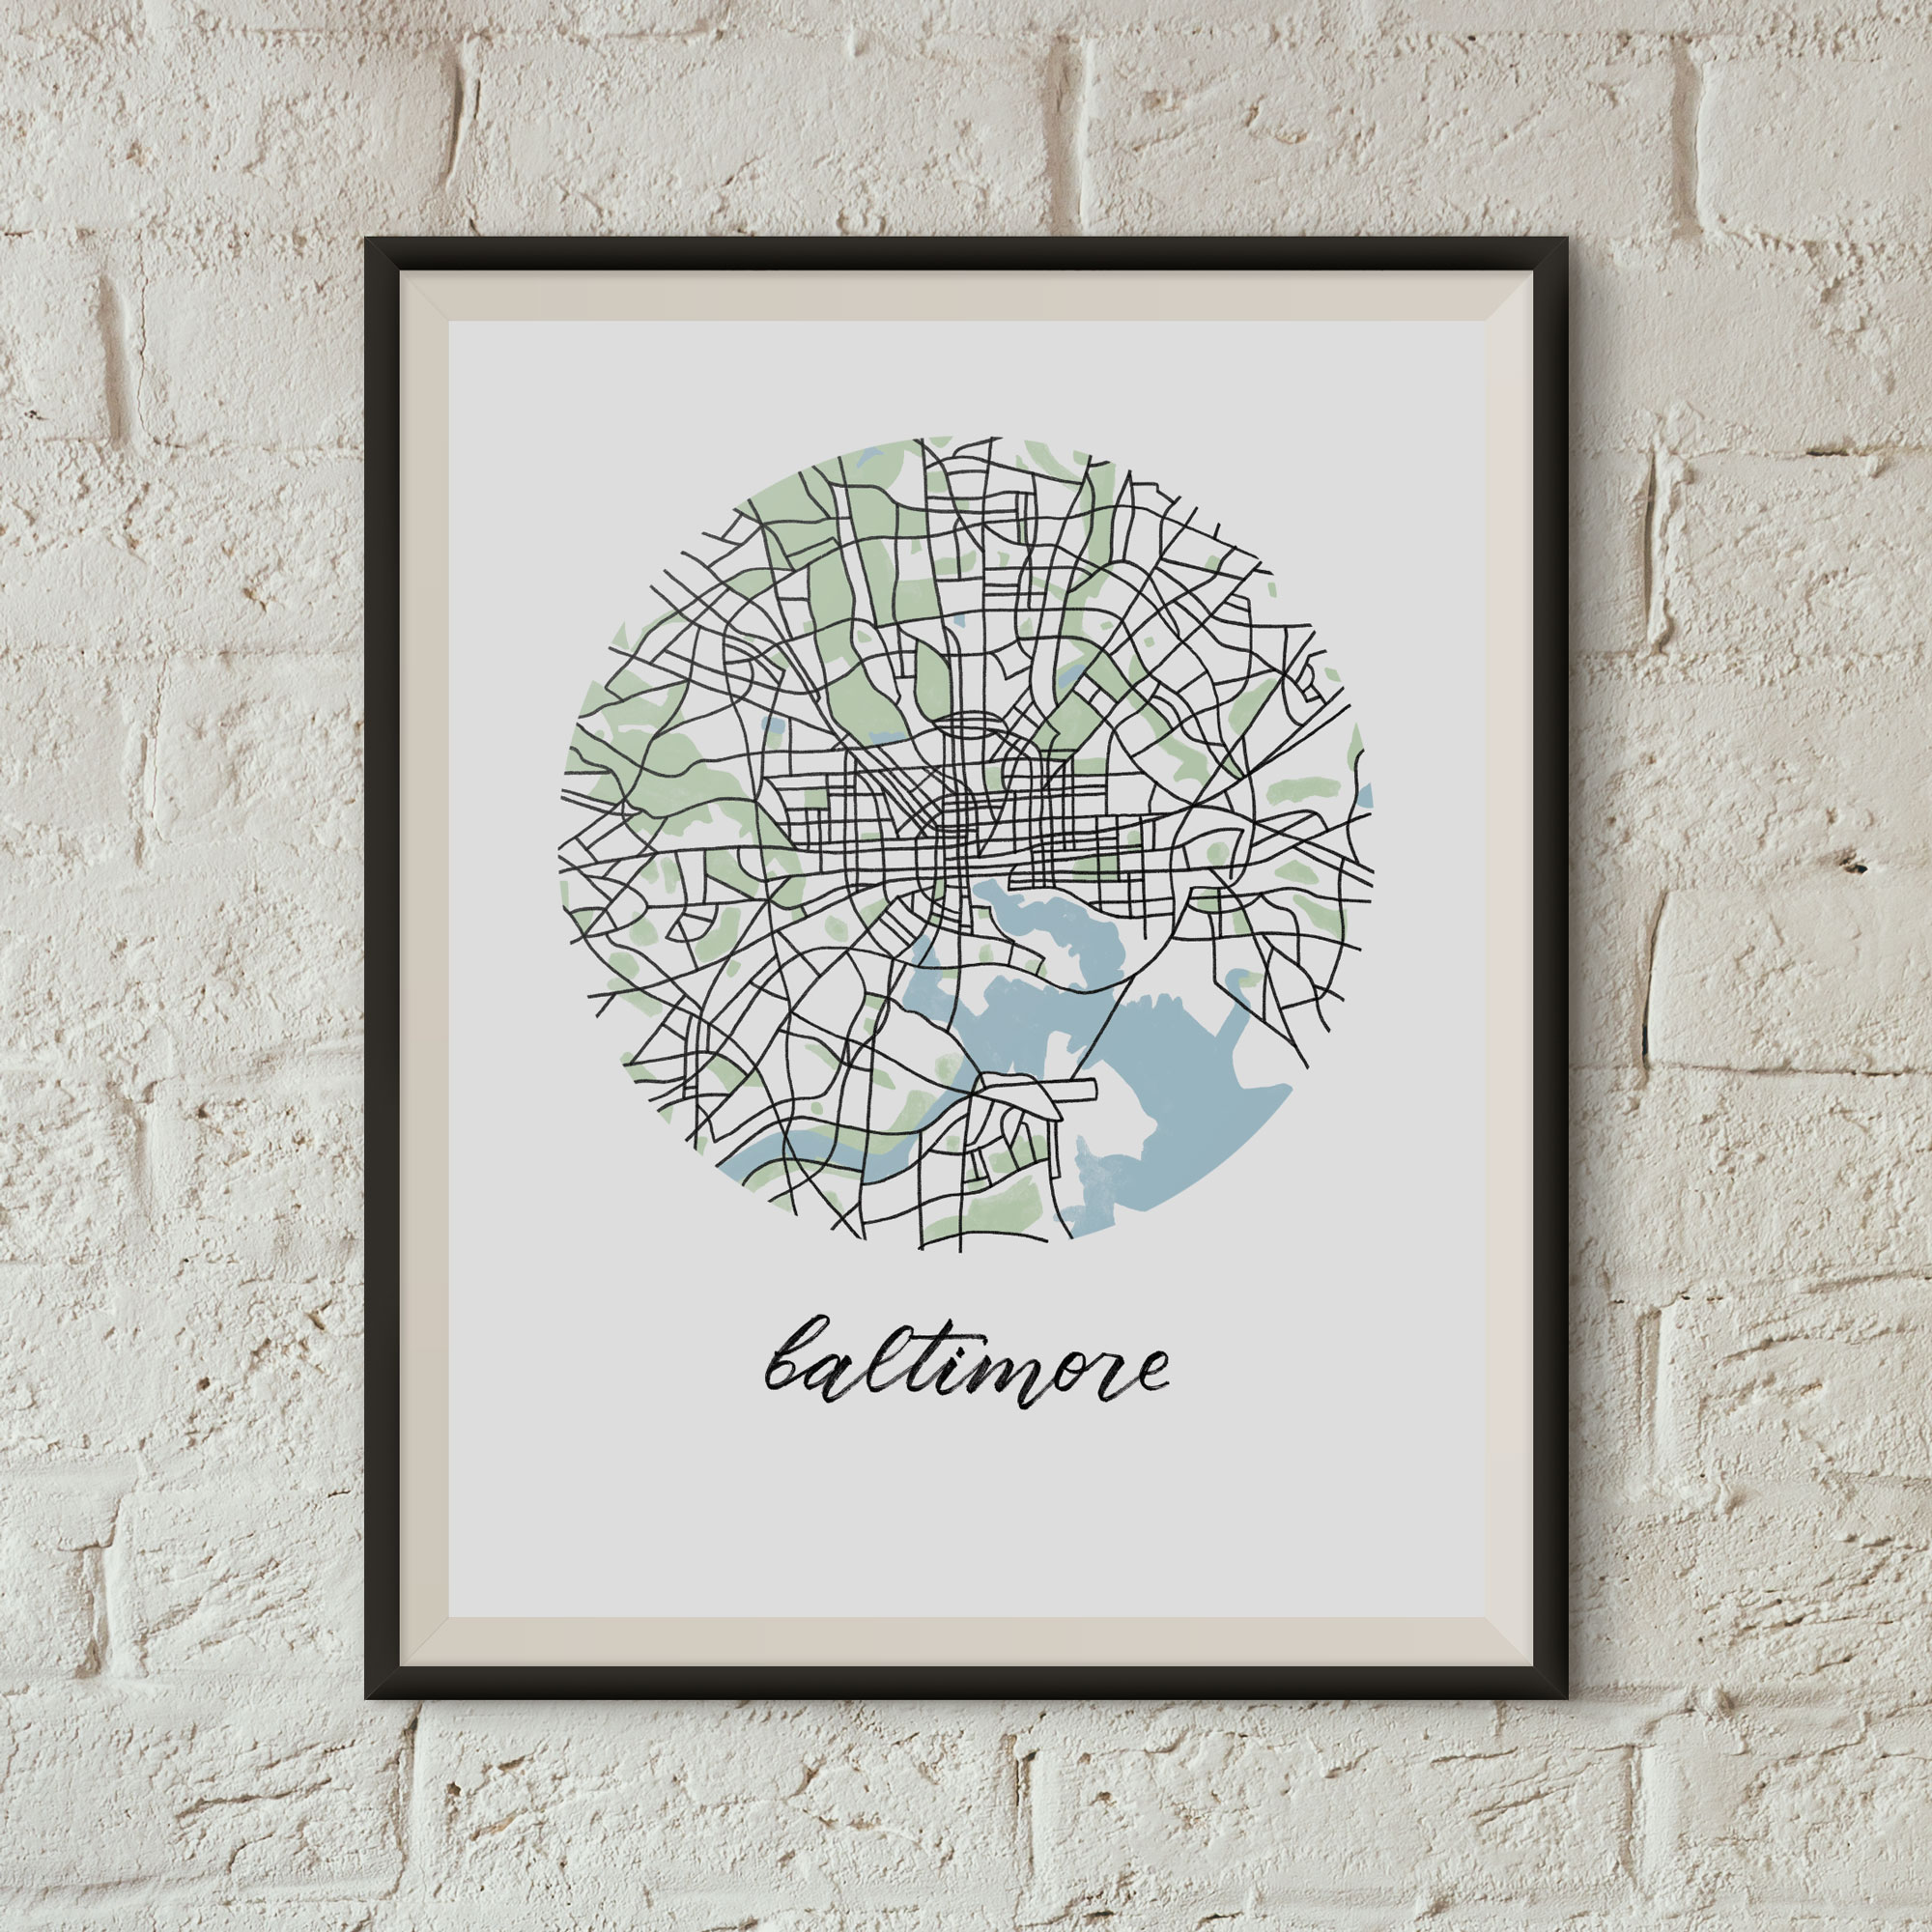 Baltimore Map Print framed on a white brick wall